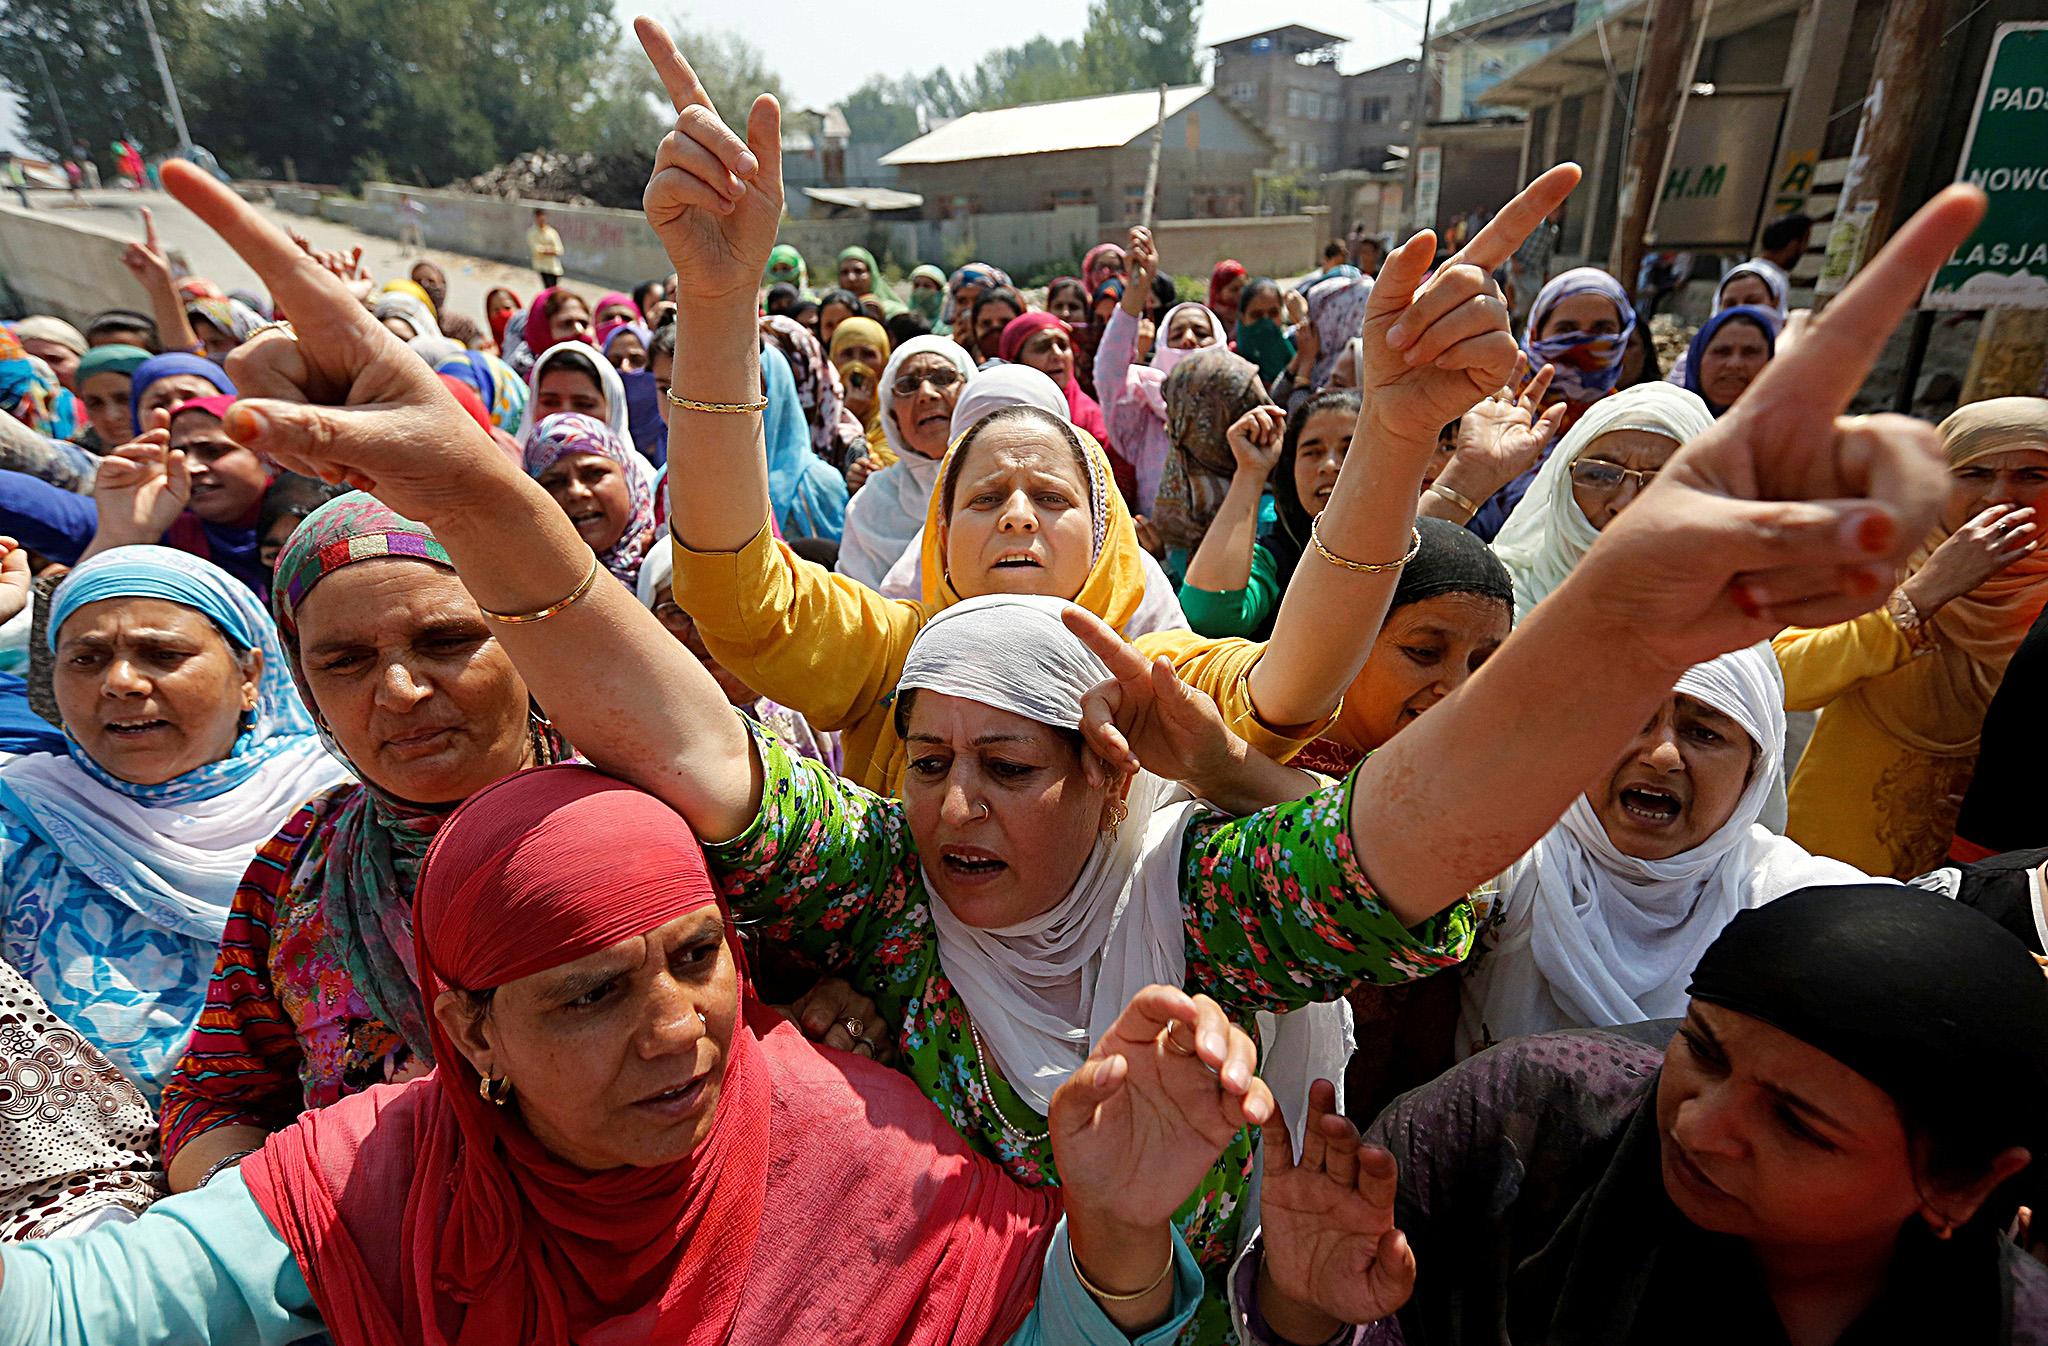 Women shout slogans during a protest in Srinagar, against the recent killings in Kashmir, September 7, 2016. REUTERS/Danish Ismail